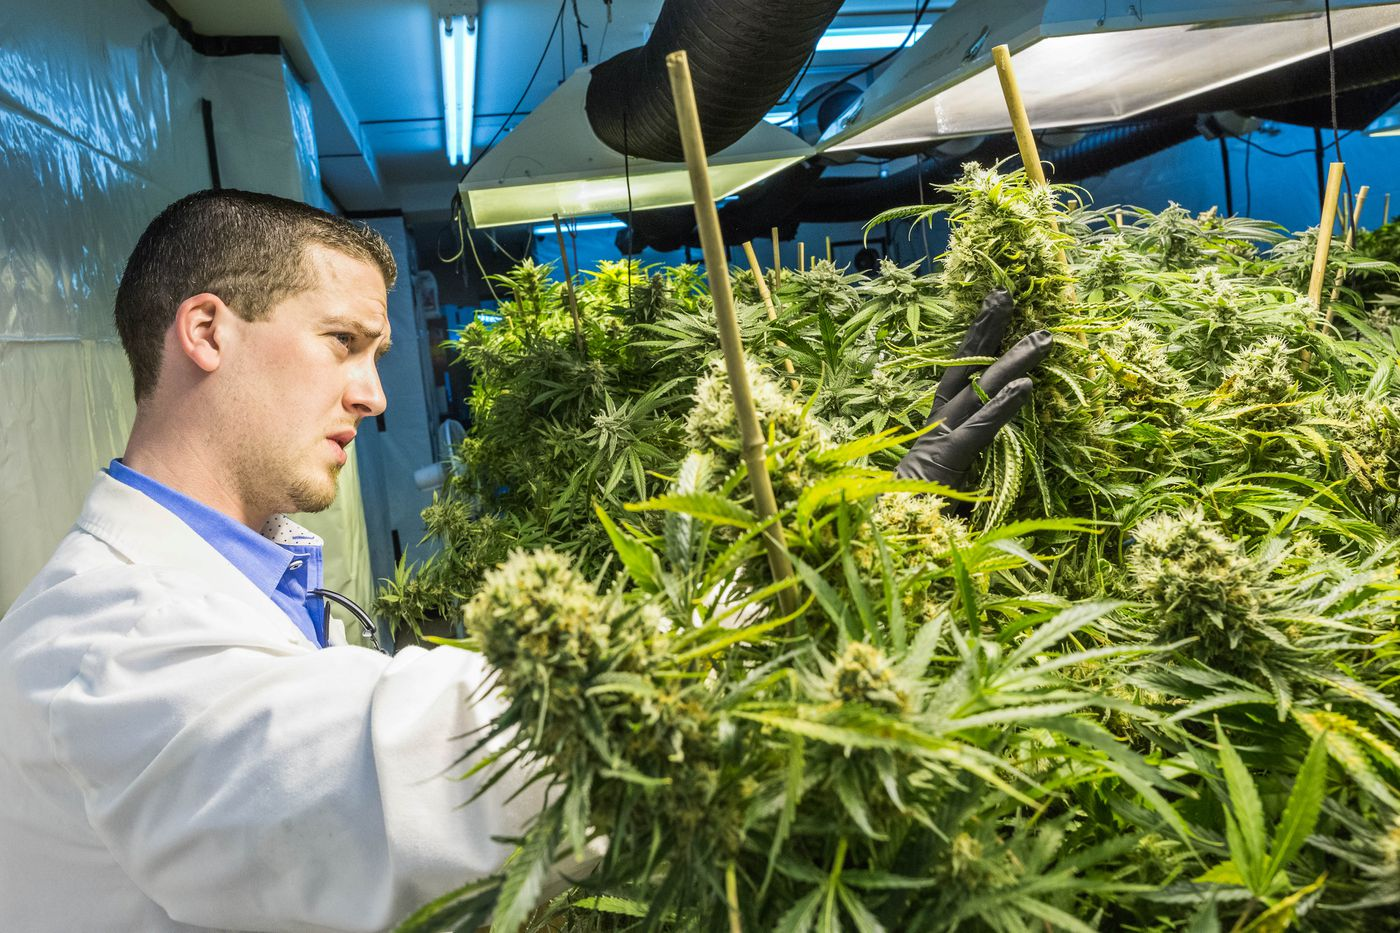 Ryan Smith, owner of Alaska Hydro Gardens, checks mature marijuana plants at his cultivation facility in Anchorage, Alaska on Wednesday, May 13, 2015. The company, which was established to serve medical marijuana patients, was forced to shut down pending final regulations from the newly-created state Marijuana Control Board.